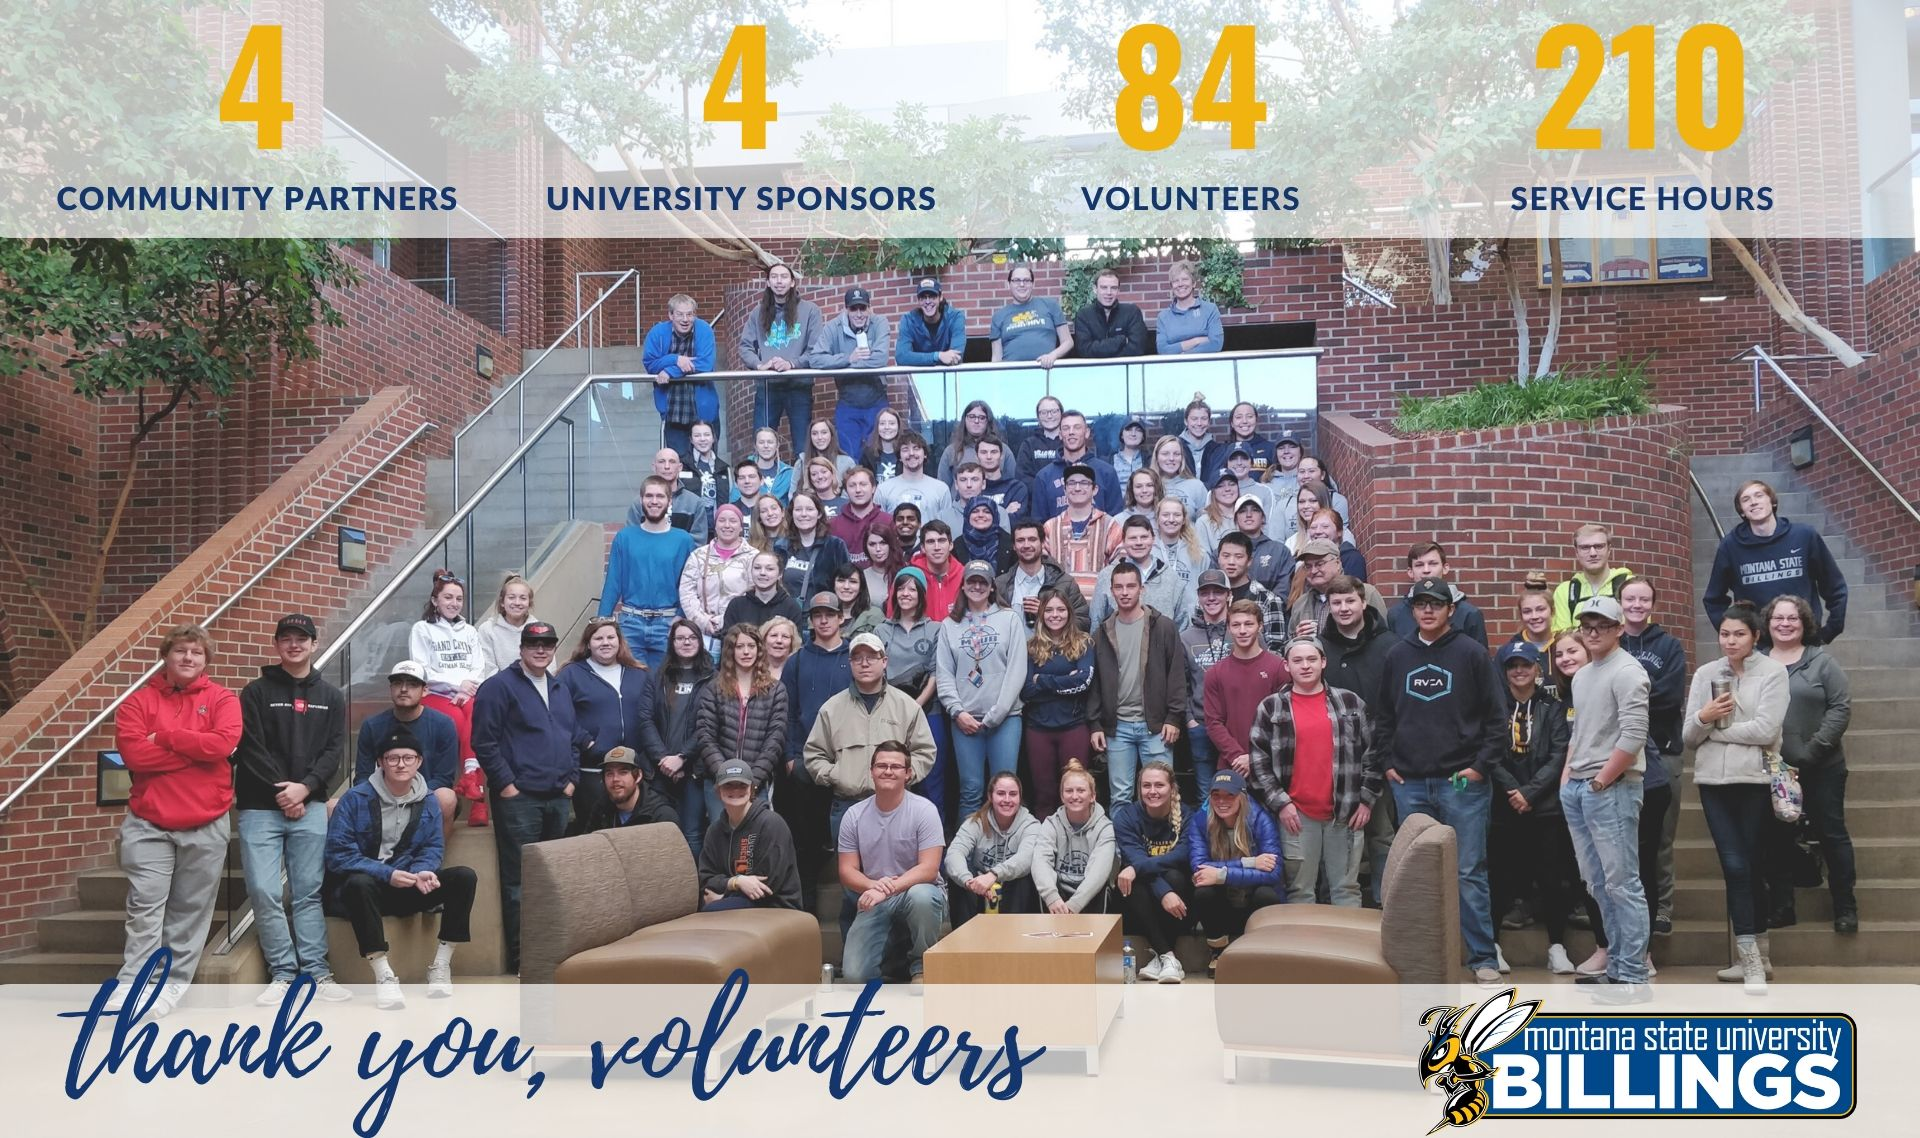 4 COMMUNITY PARTNERS 4 UNIVERSITY PARTNERS 84 VOLUNTEERS 210 SERVICE HOURS THANK YOU VOLUNTEERS